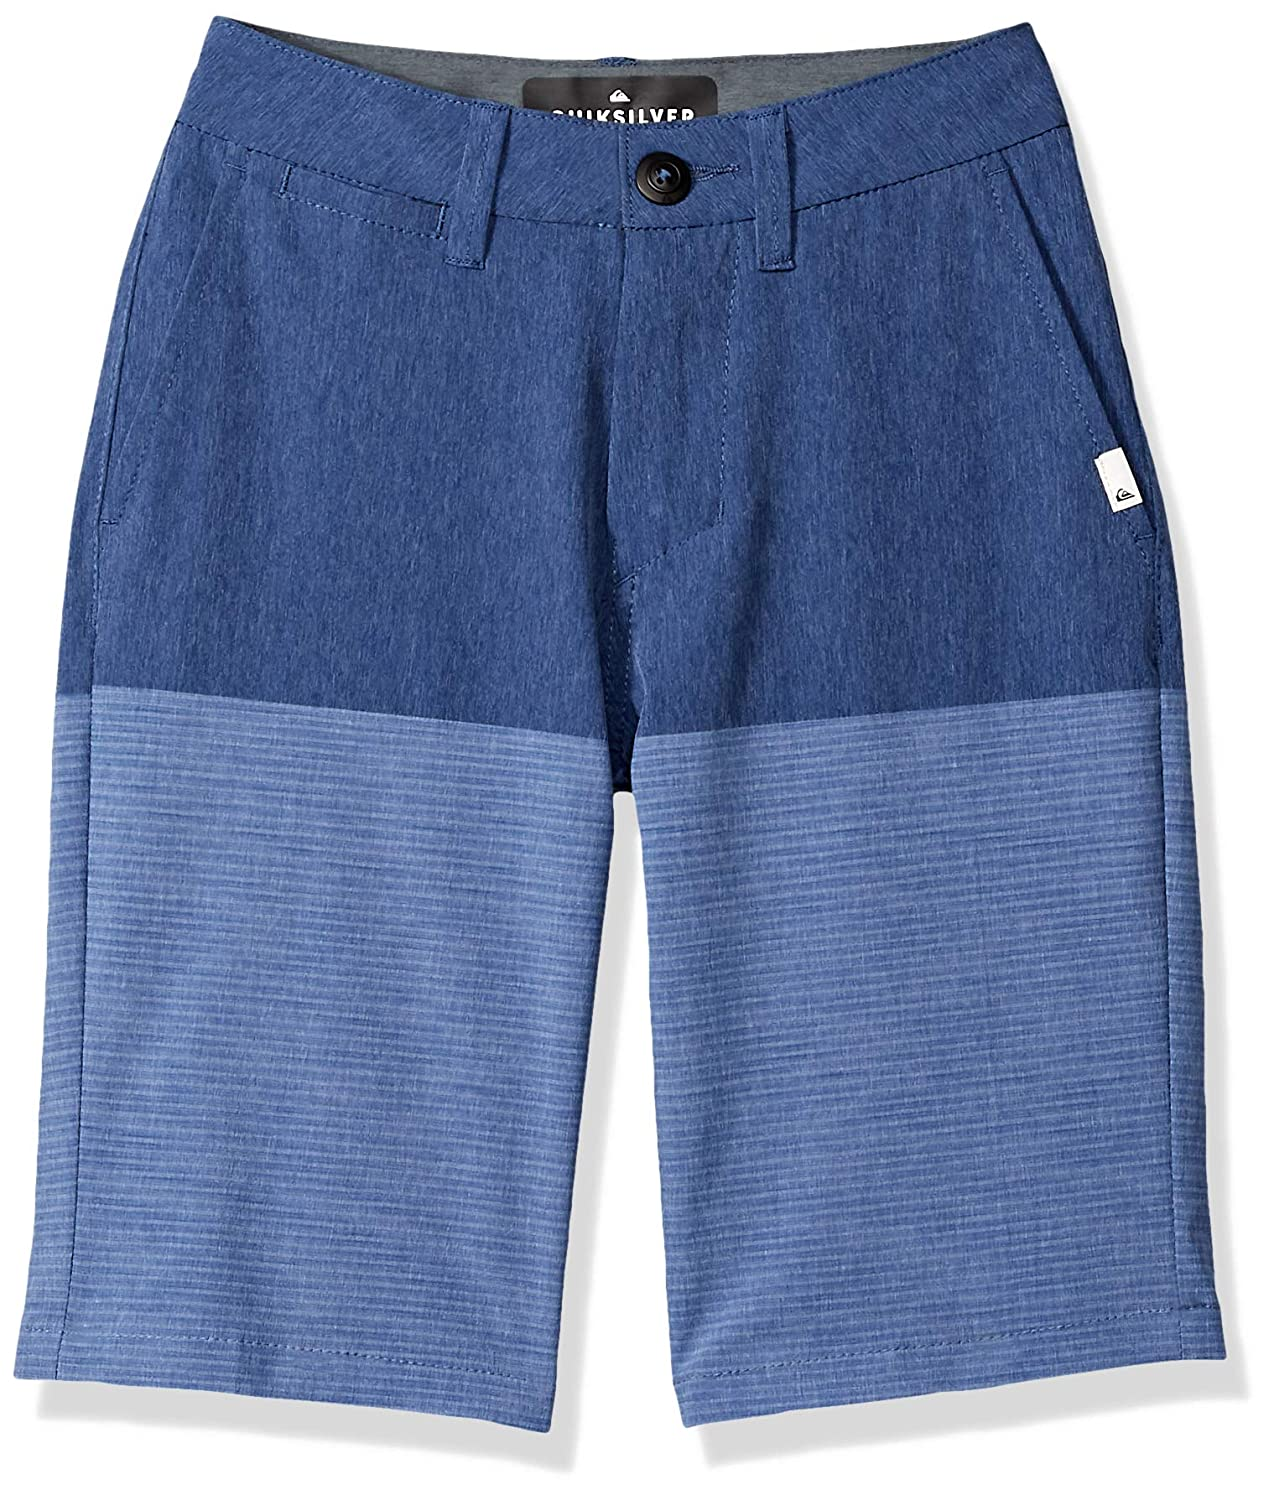 8f29aacdc429d Amazon.com: Quiksilver Boys Union Division Amphibian Youth Hybrid Short:  Clothing